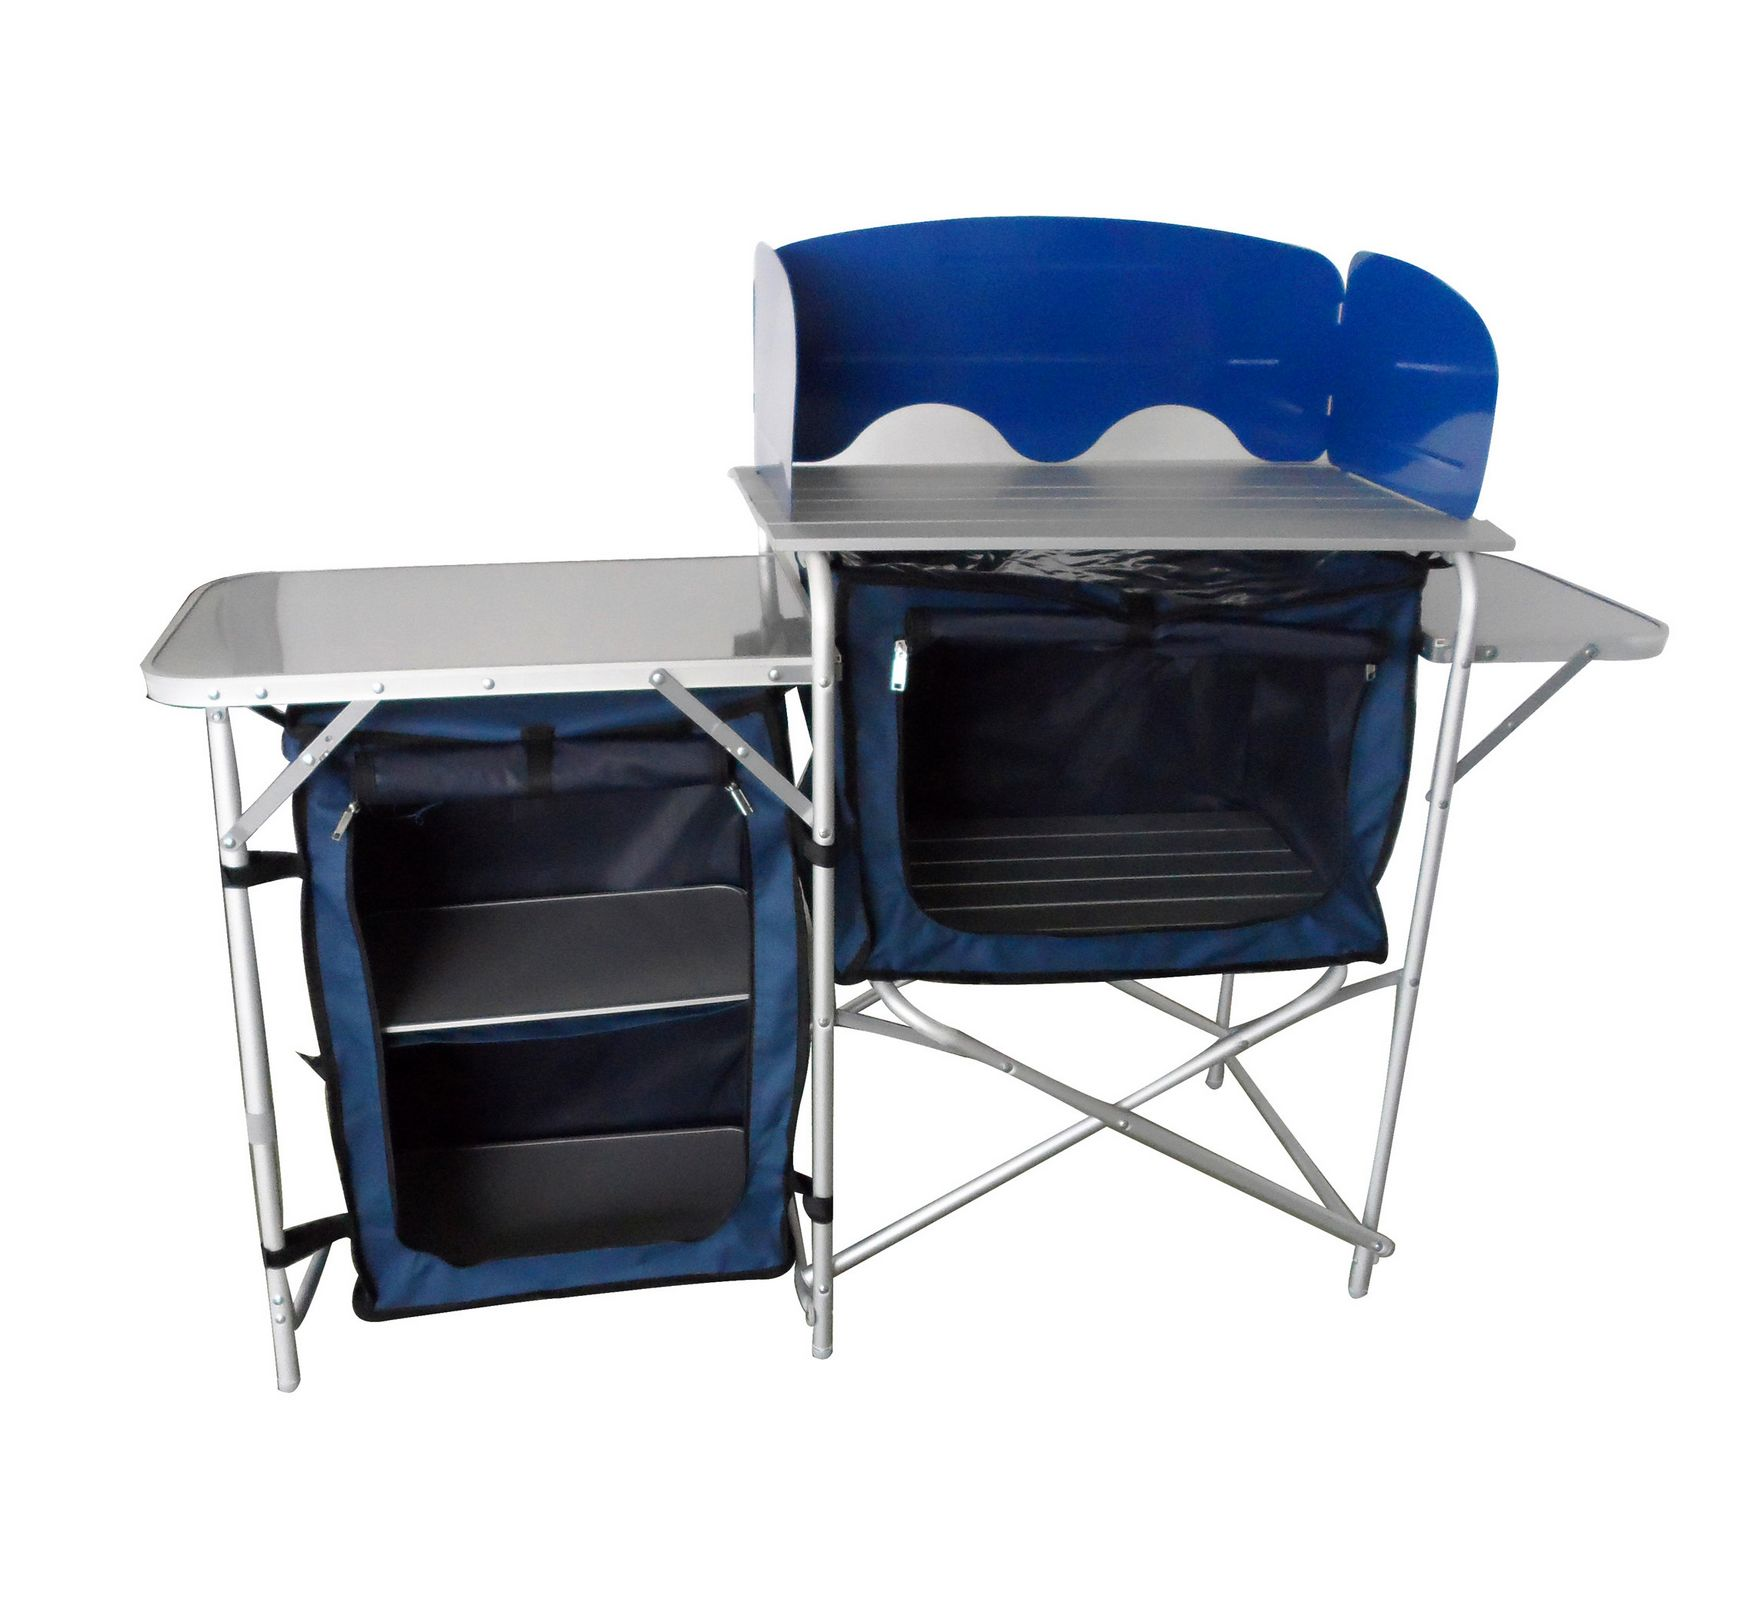 Camping folding kitchen table stand outdoor 3 rooms for Folding kitchen table